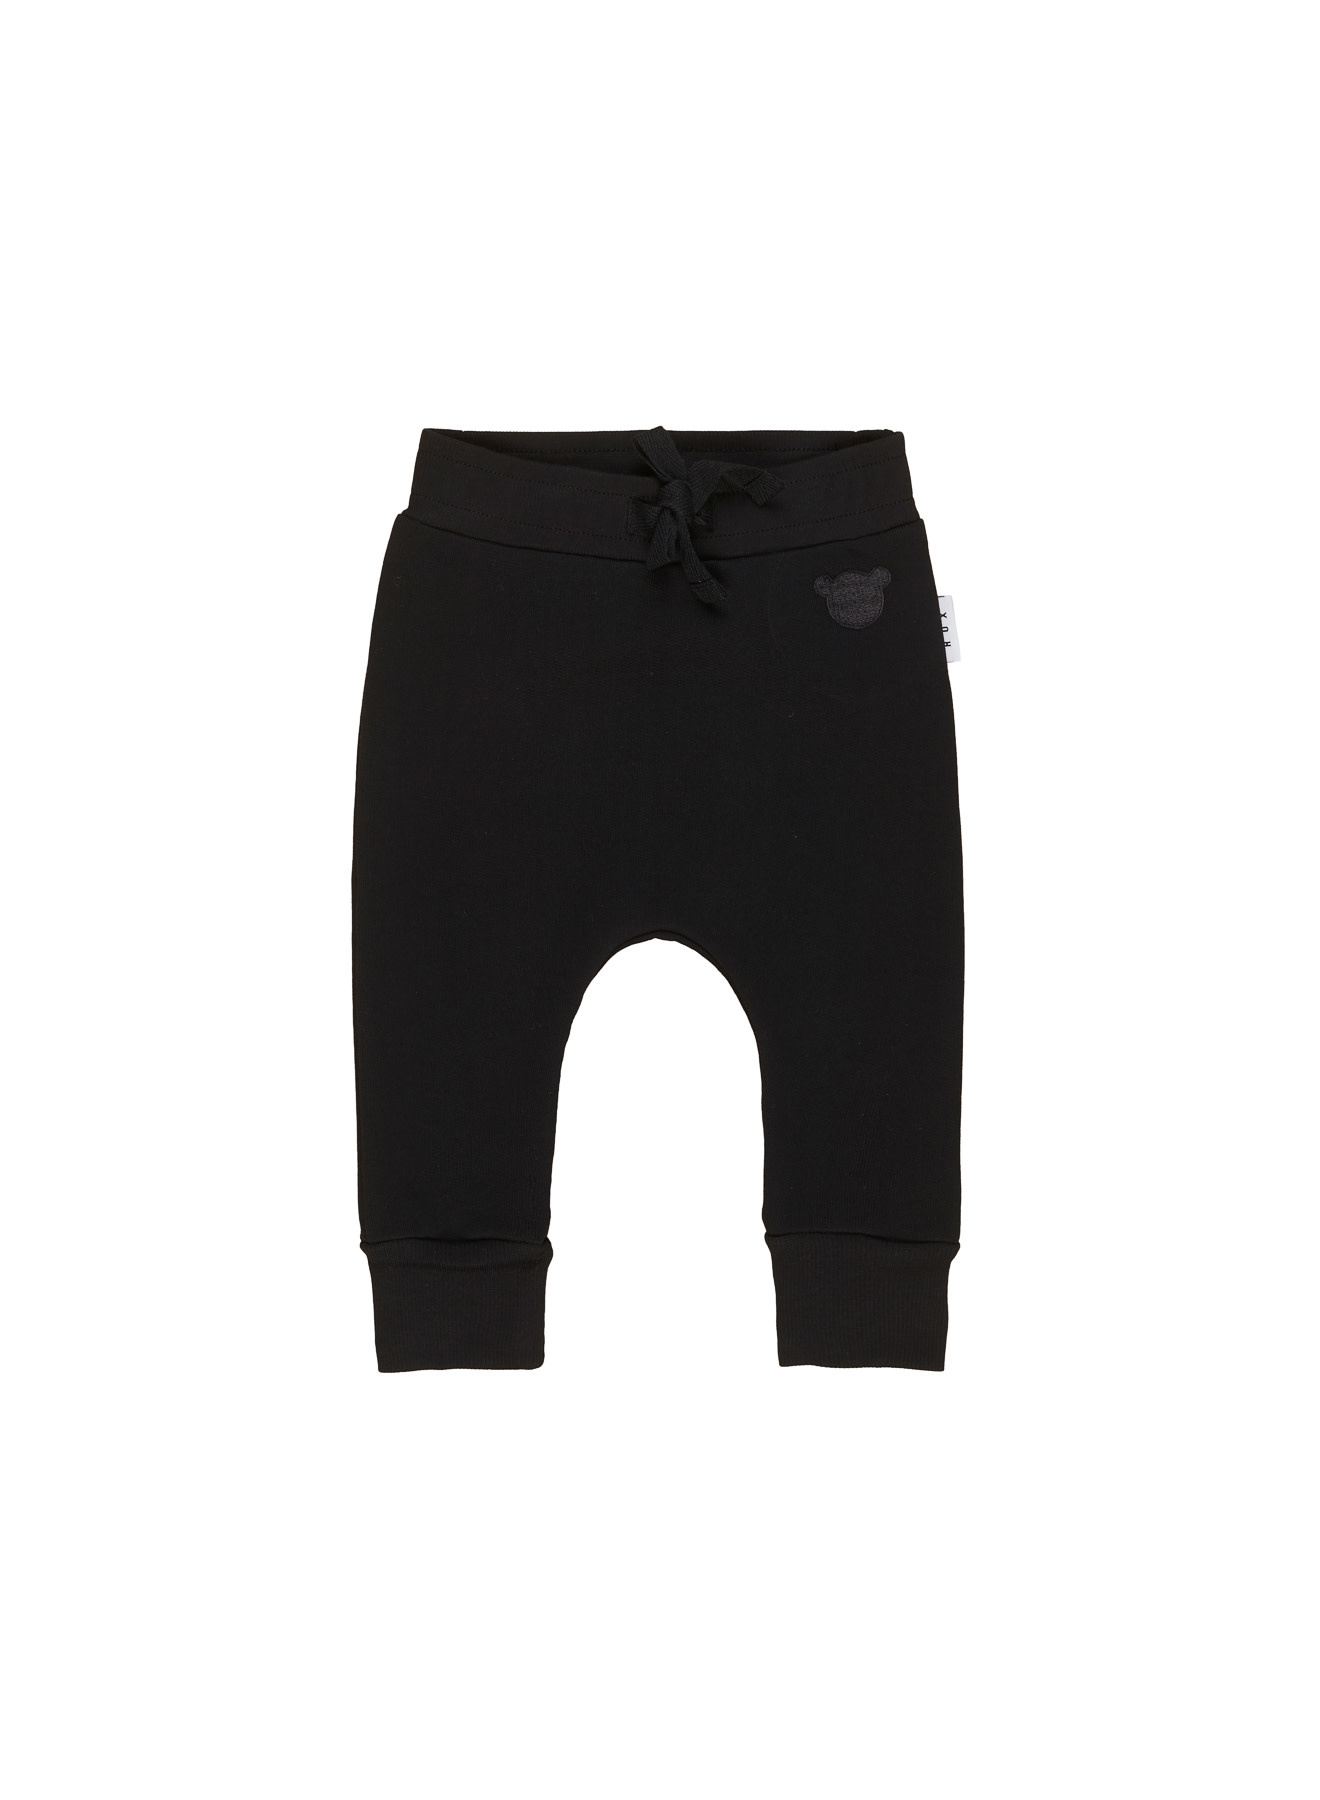 HUX BABY Black Drop Crotch Pant